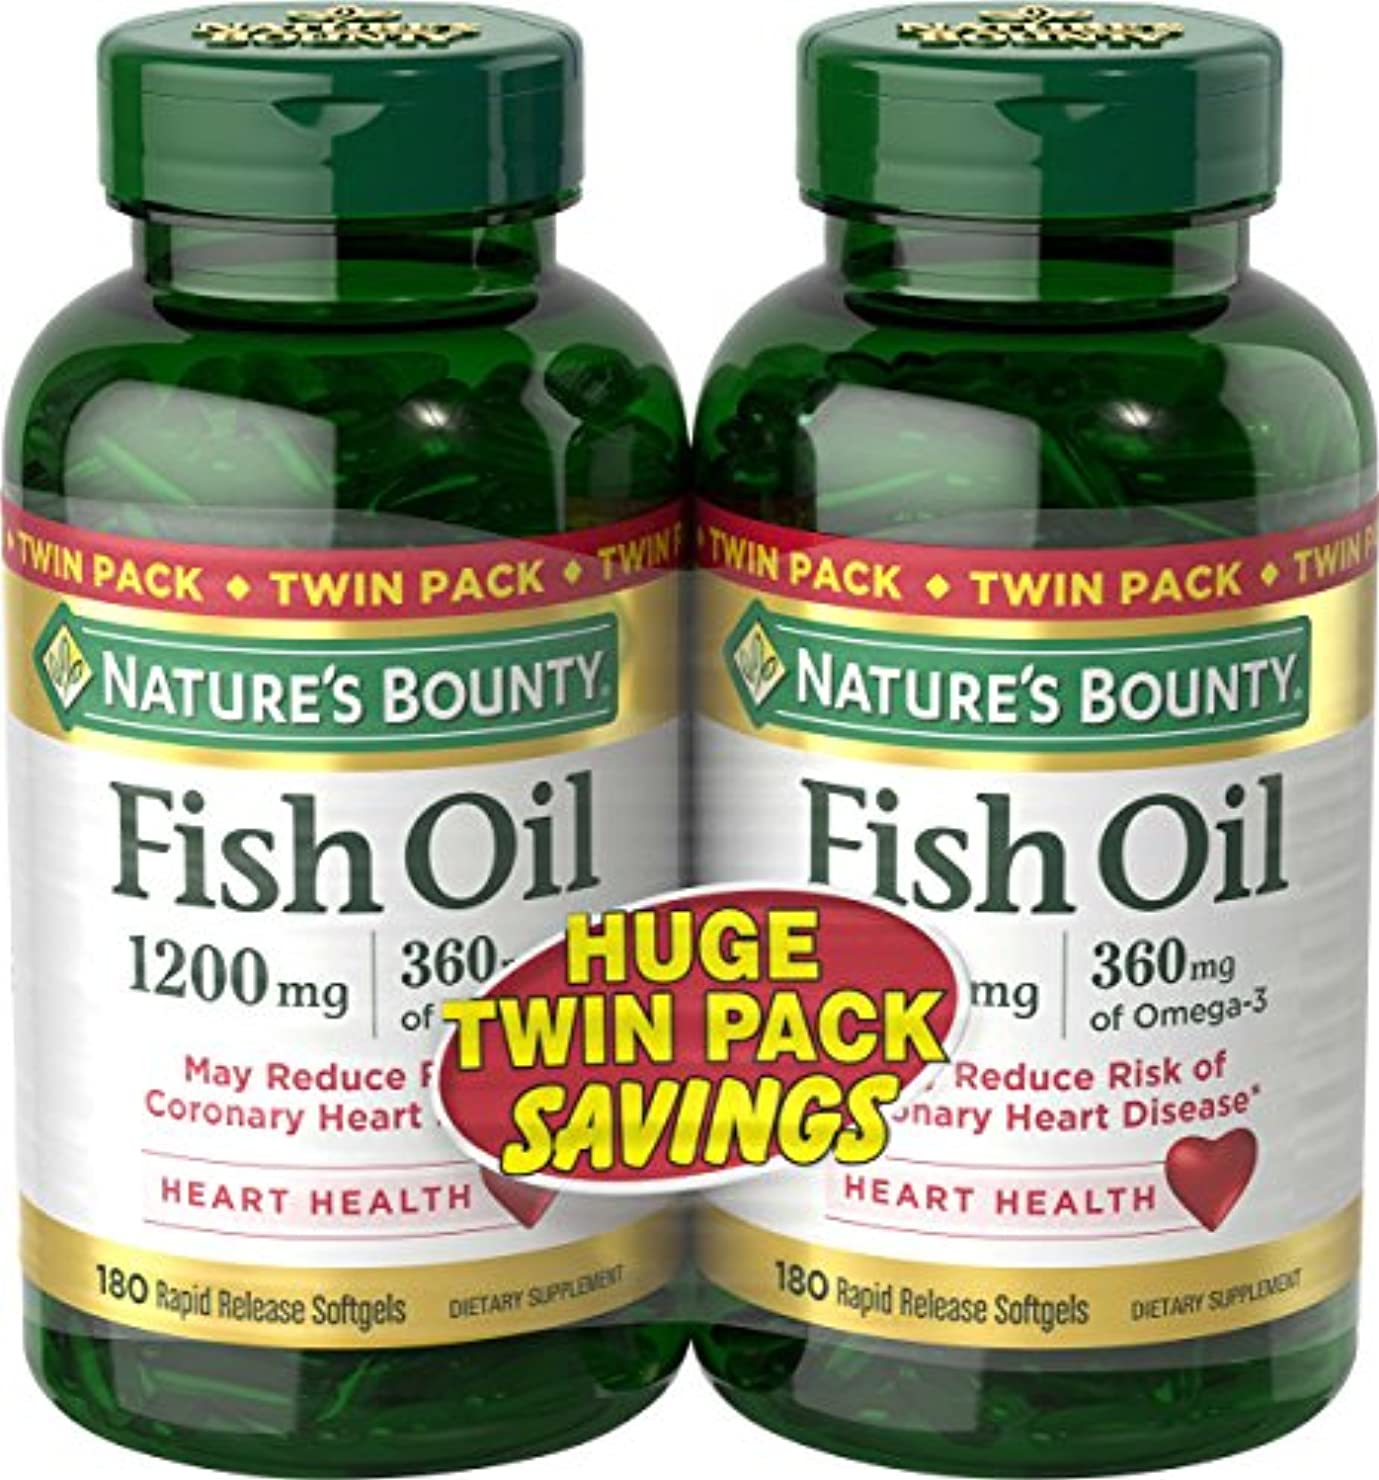 文句を言うアクセル曲げるNature's Bounty Fish Oil 1200 mg Twin Packs, 180 Rapid Release Liguid Softgels 海外直送品